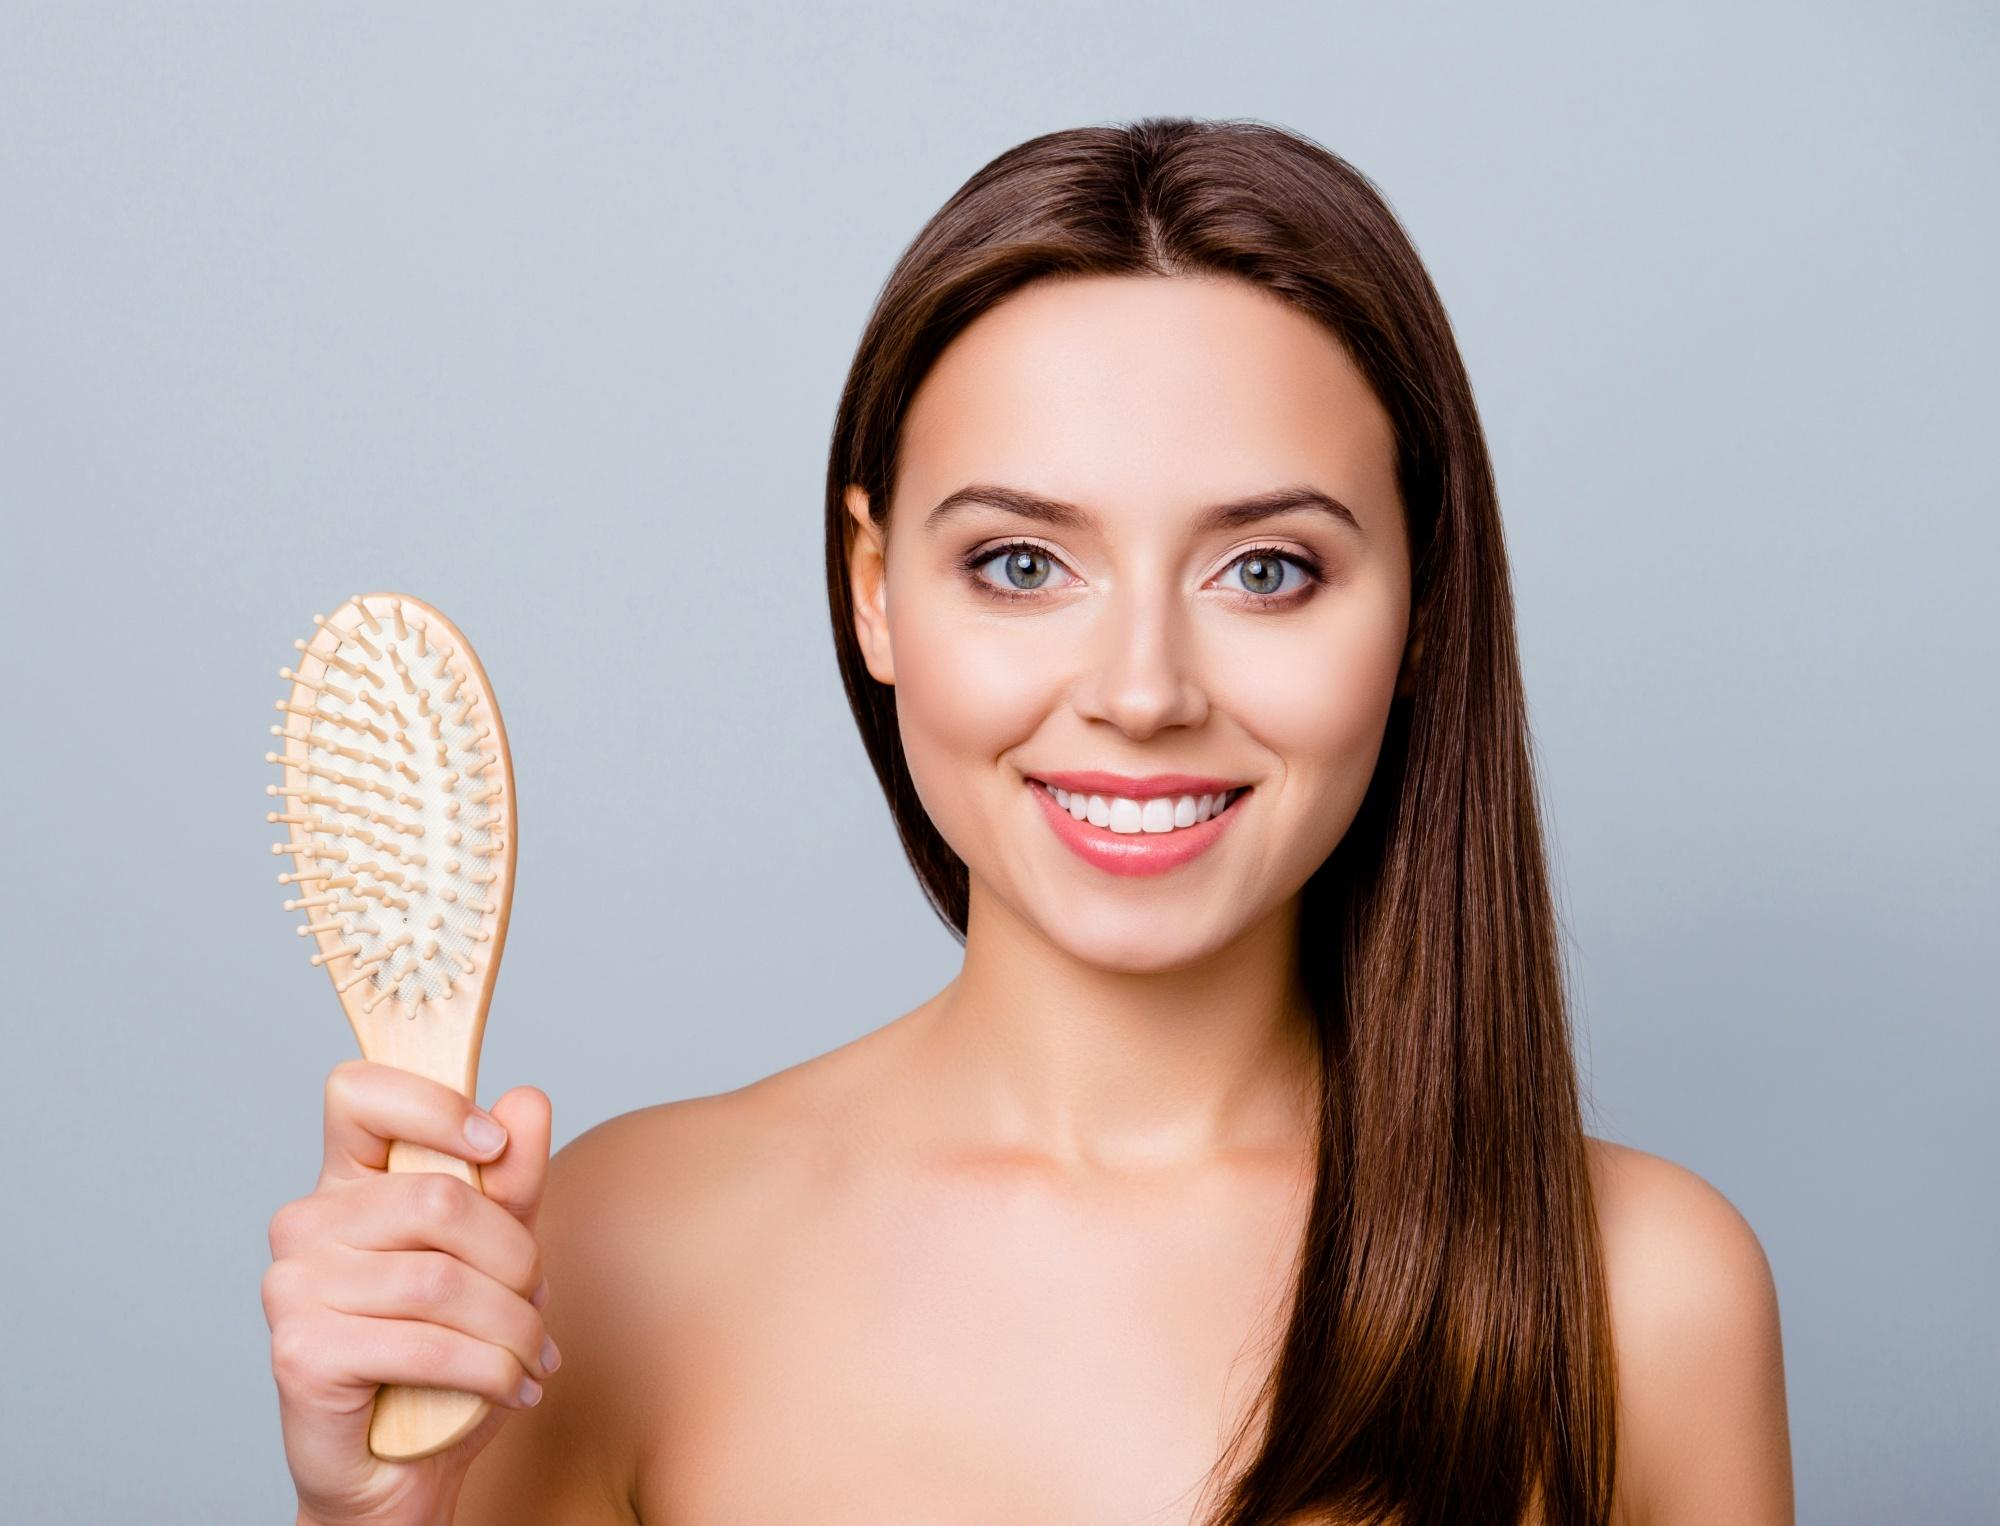 Brush your hair the right way. Woman with long straight dark brown hair holding a hairbrush